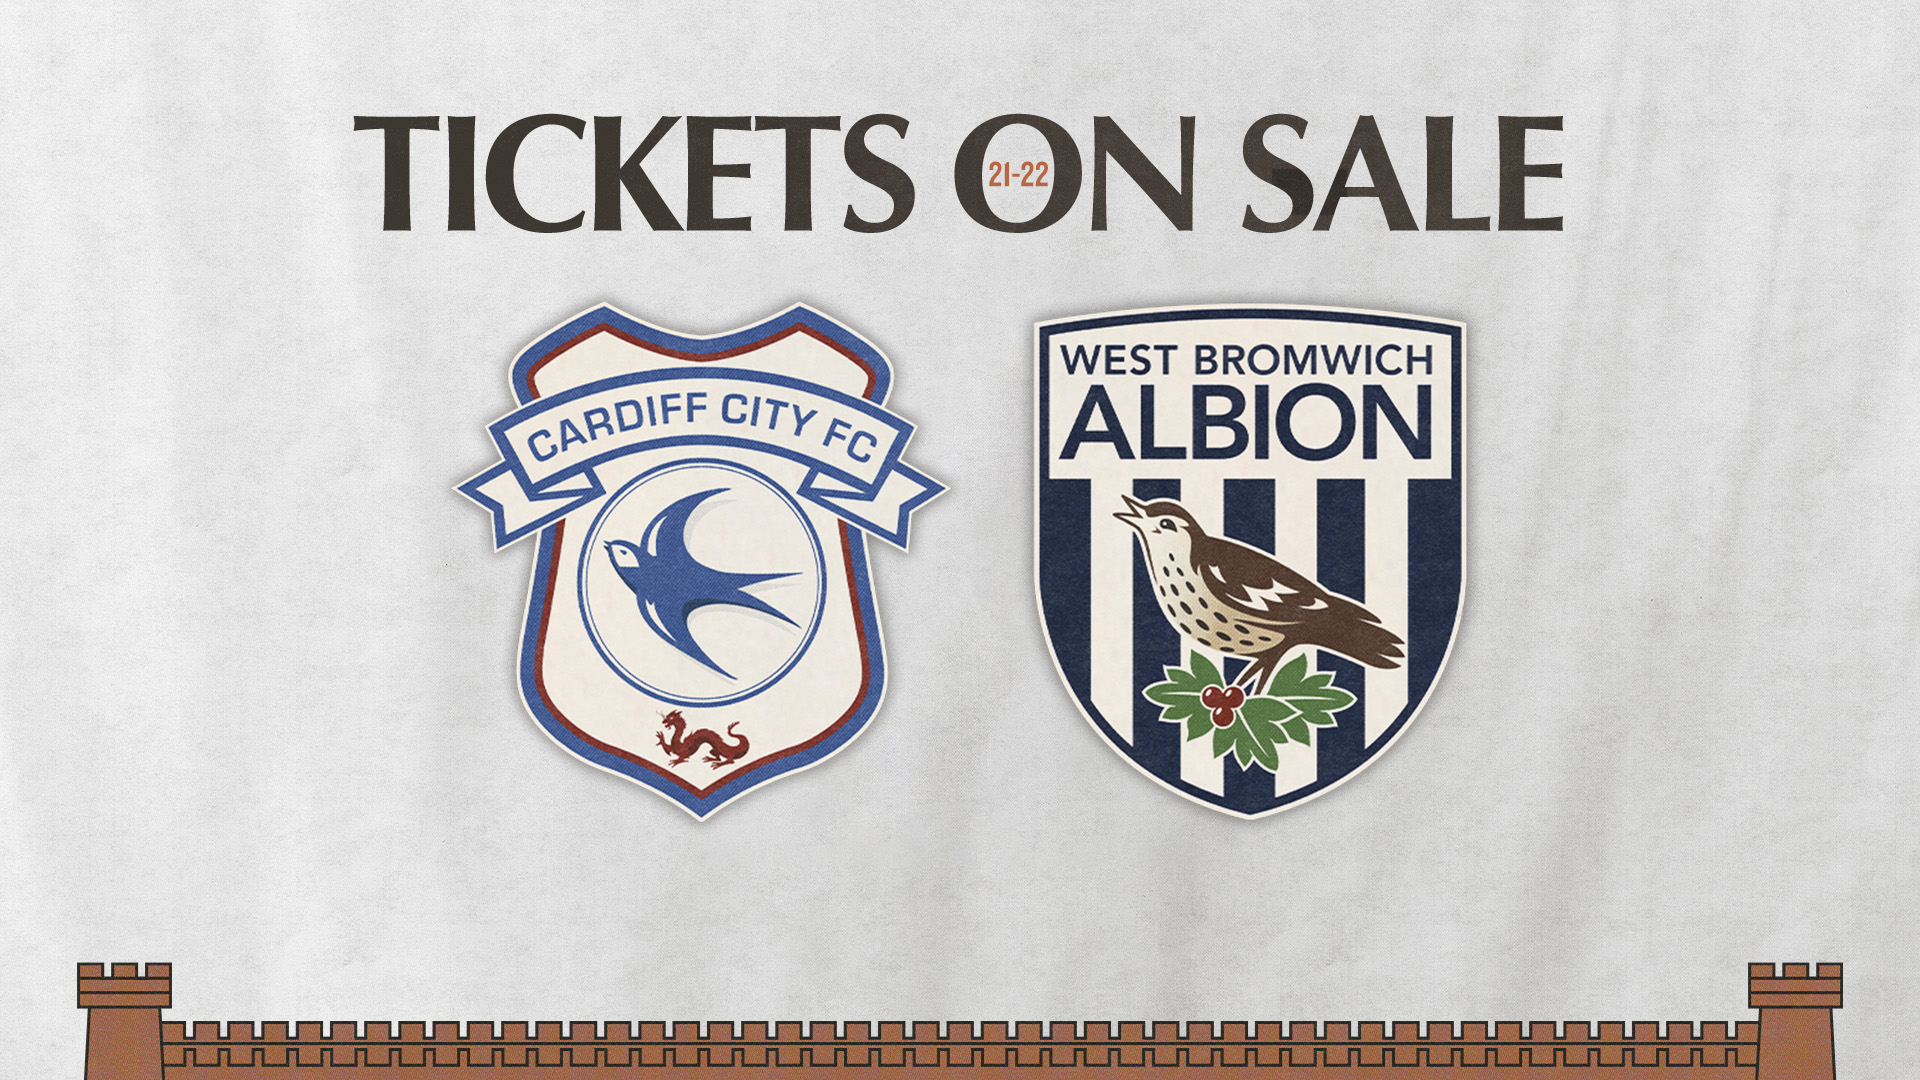 Cardiff and WBA tickets